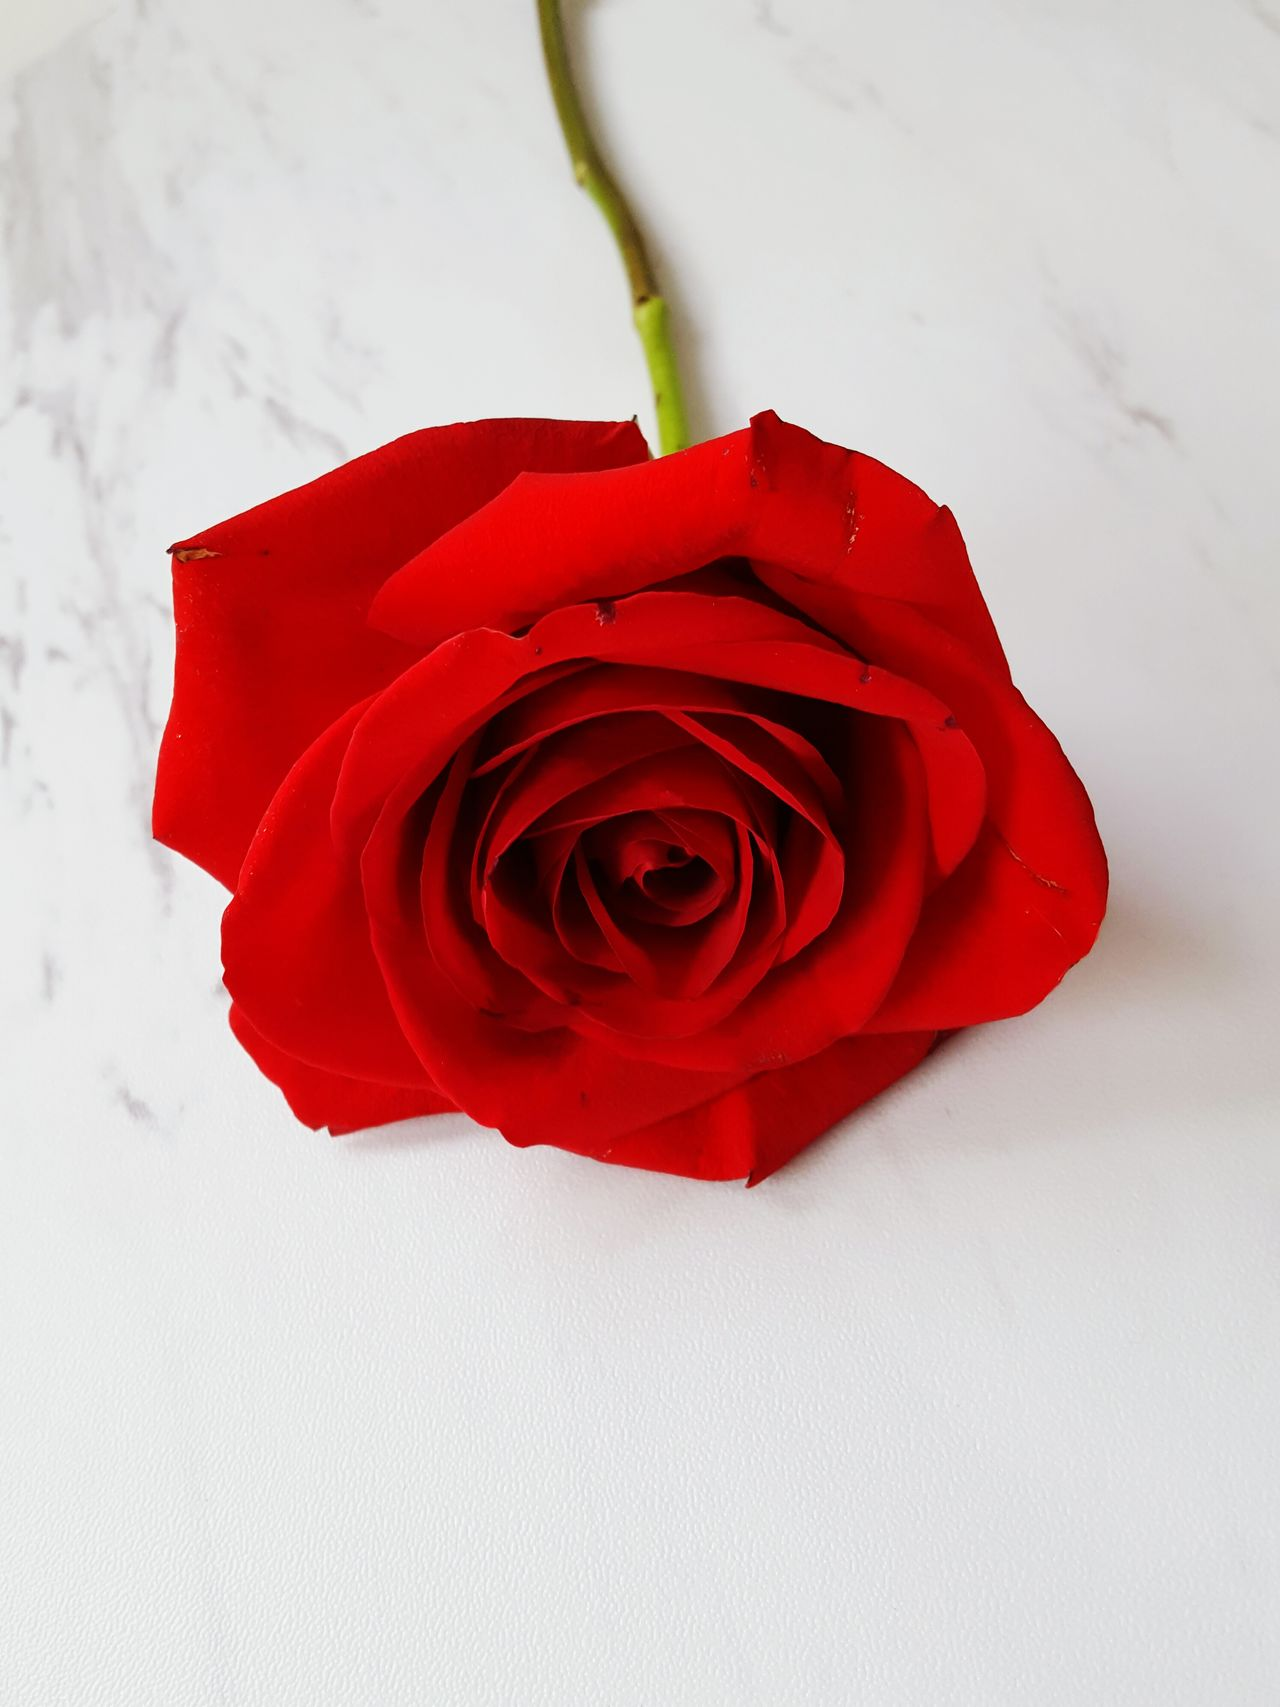 Red Rose - Flower Flower Romance Flower Head Petal Fragility No People Freshness Close-up Nature Indoors  Day Beauty Tranquility Beauty In Nature Marble